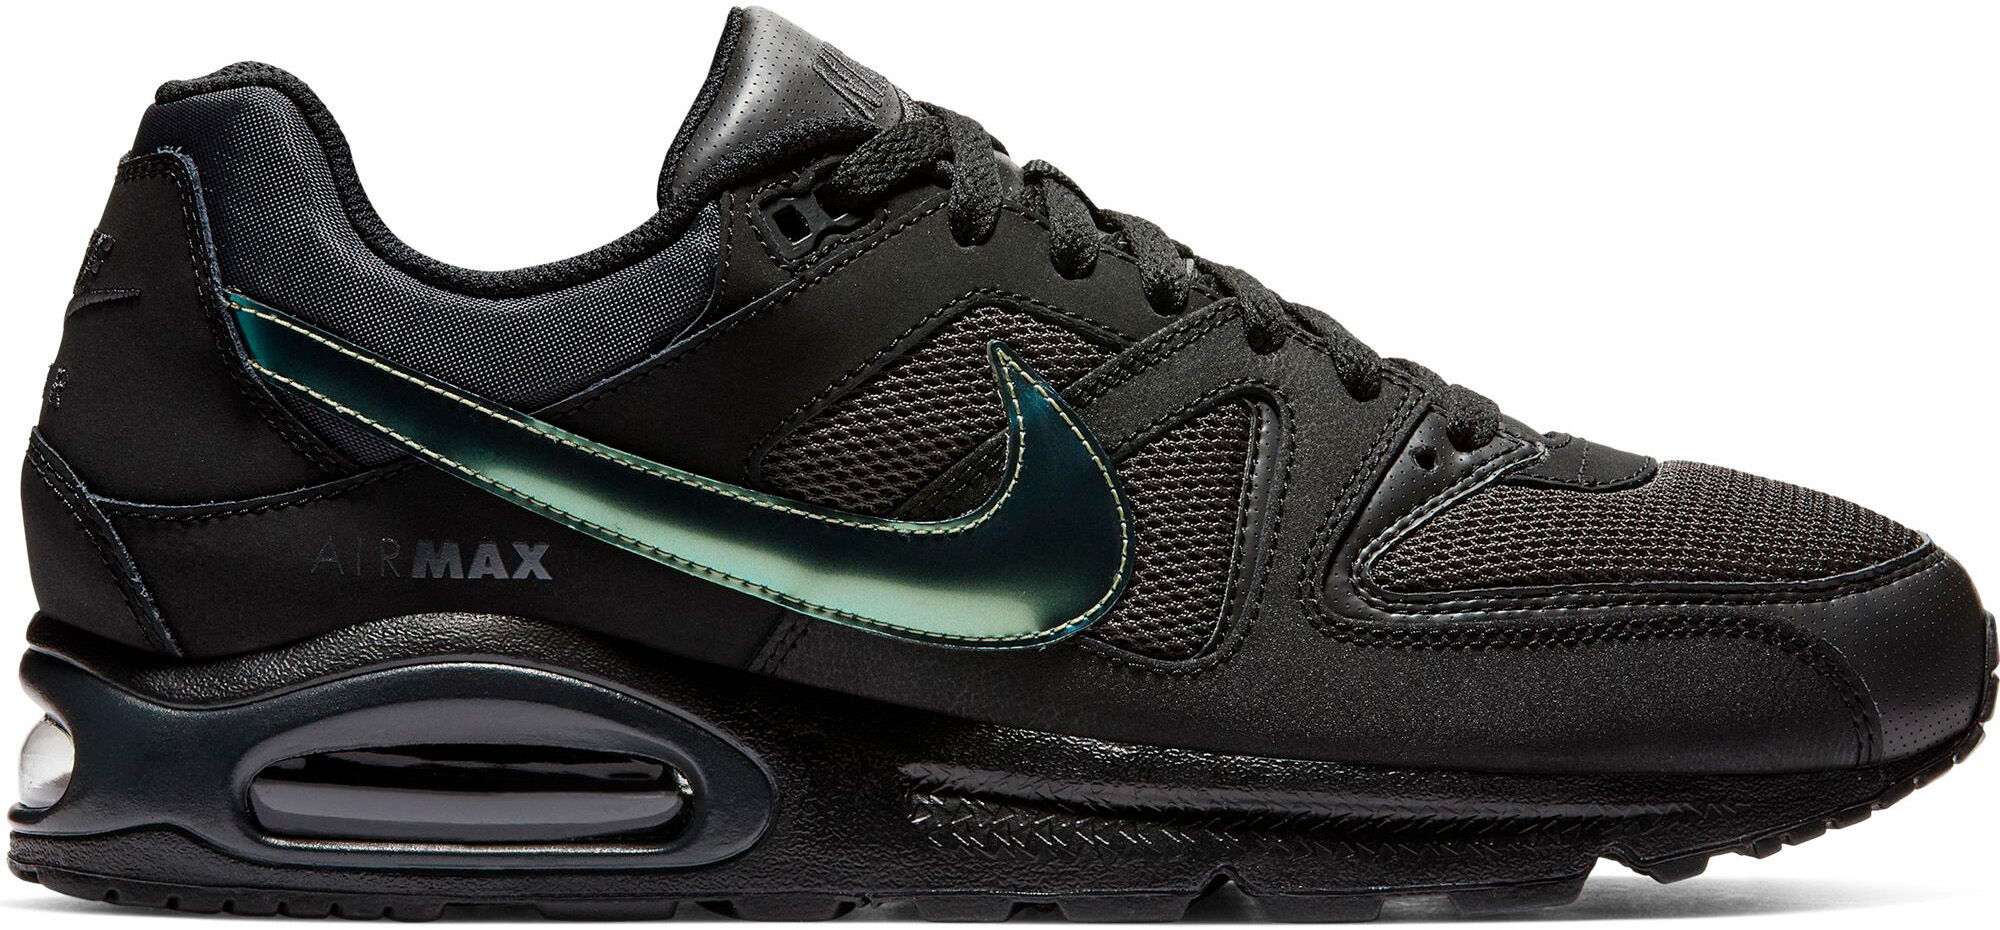 Få den nyeste Foot Locker Nike Air Max Jewell Premium Dame